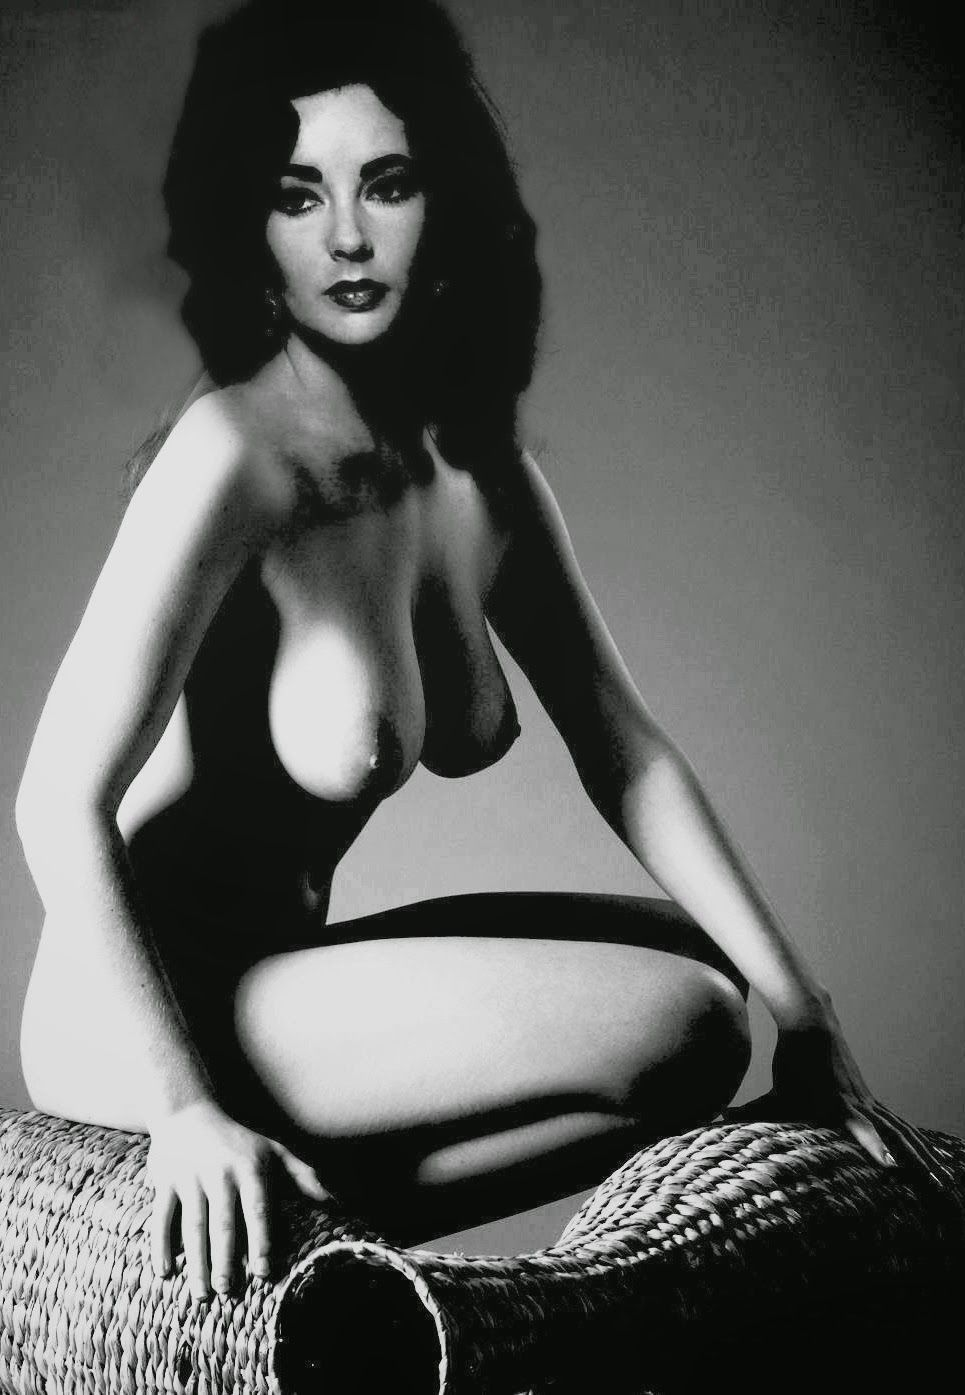 New nude marilyn monroe photos, rivalry with elizabeth taylor revealed in vanity fair